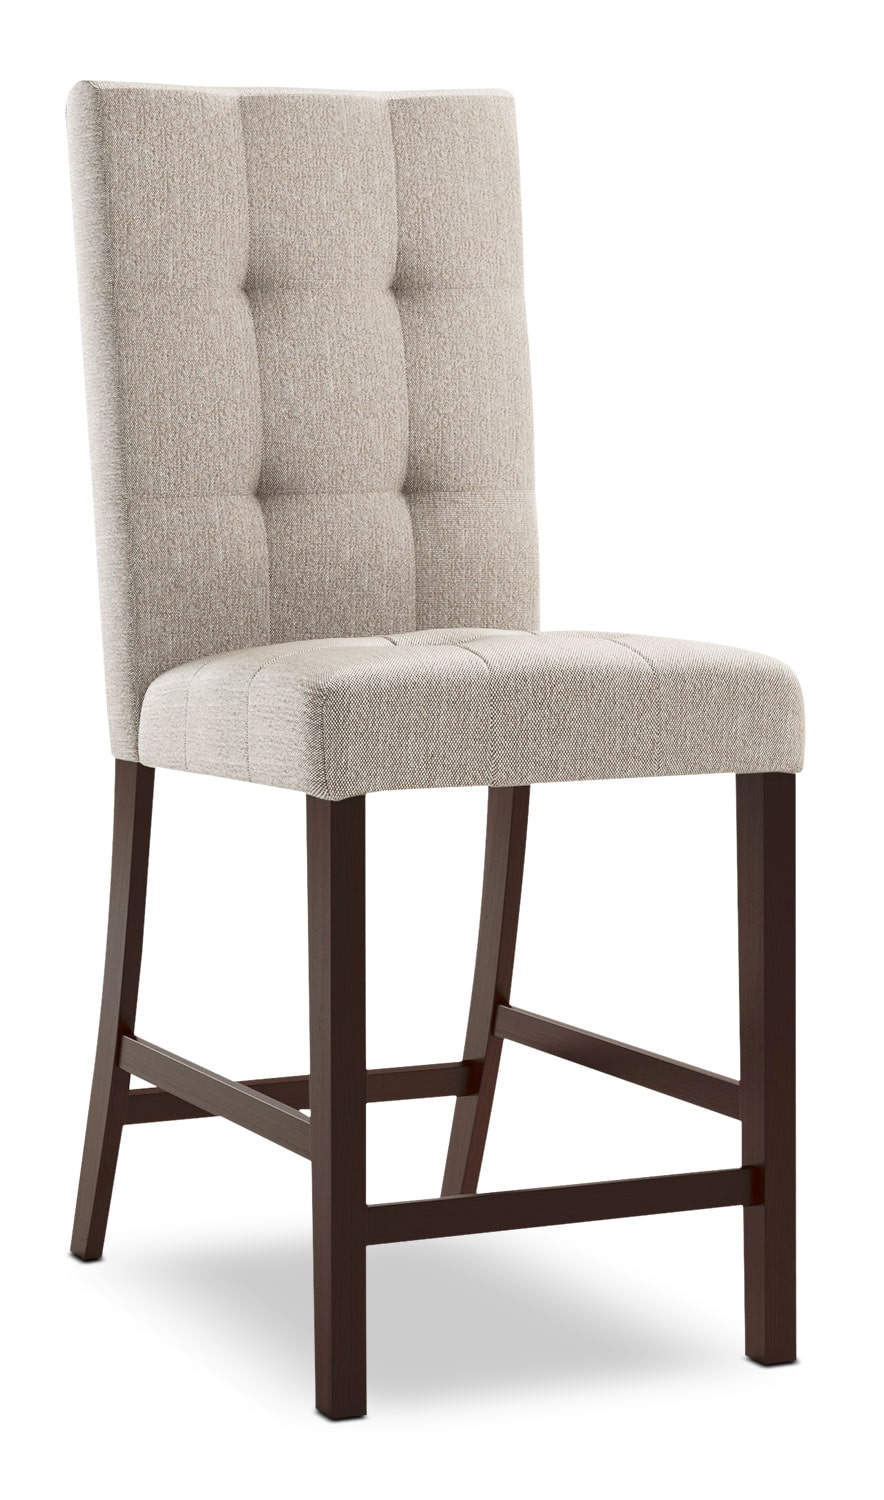 Bistro Square Tufted Counter Height Dining Chair Platinum The Brick